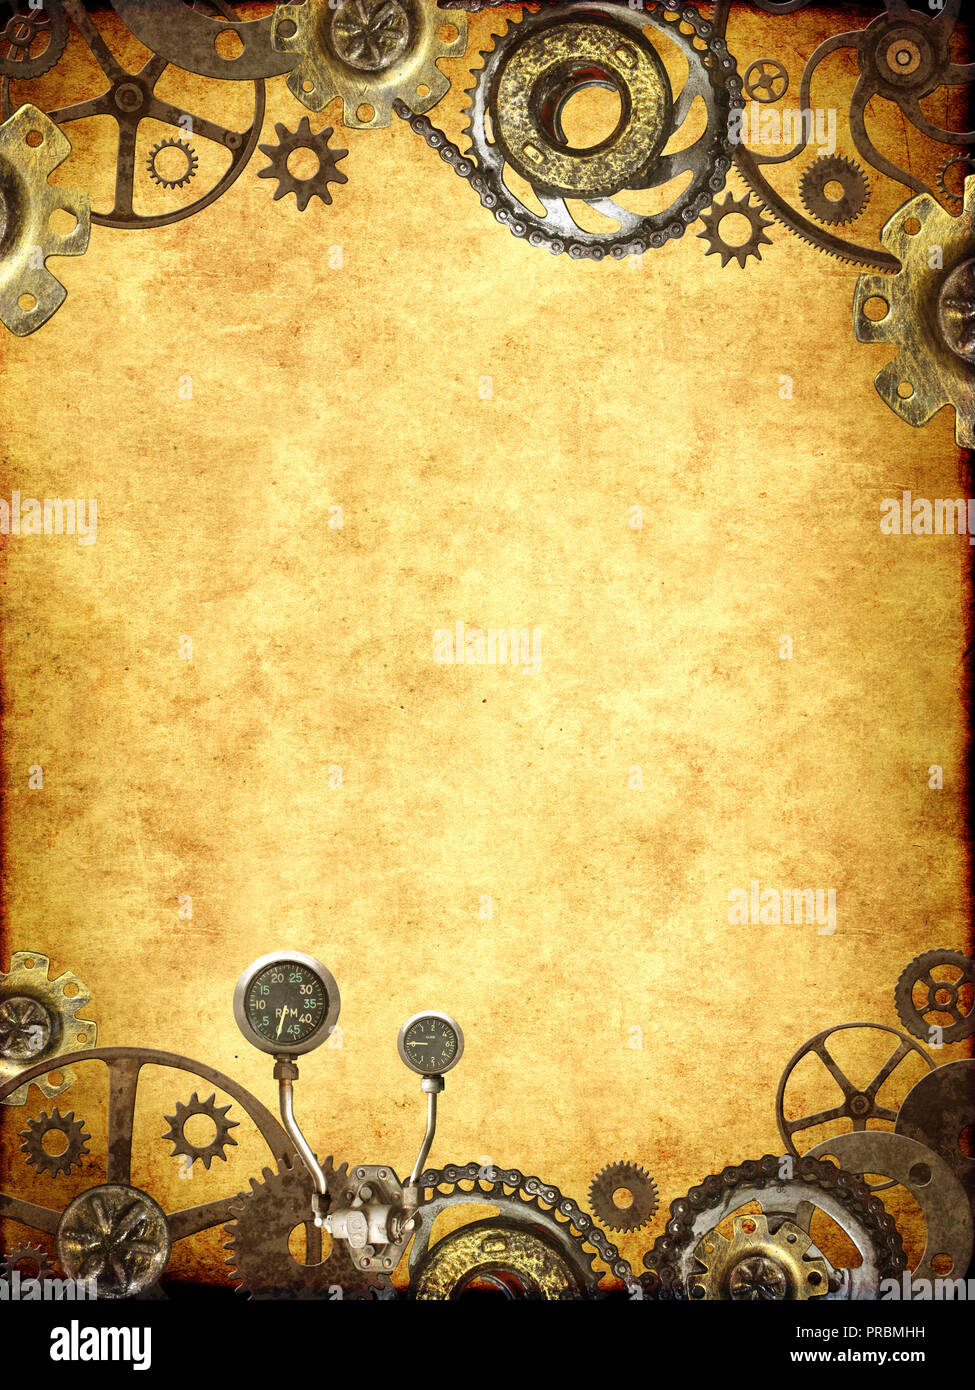 grunge background with paper texture and metallic frame with vintage